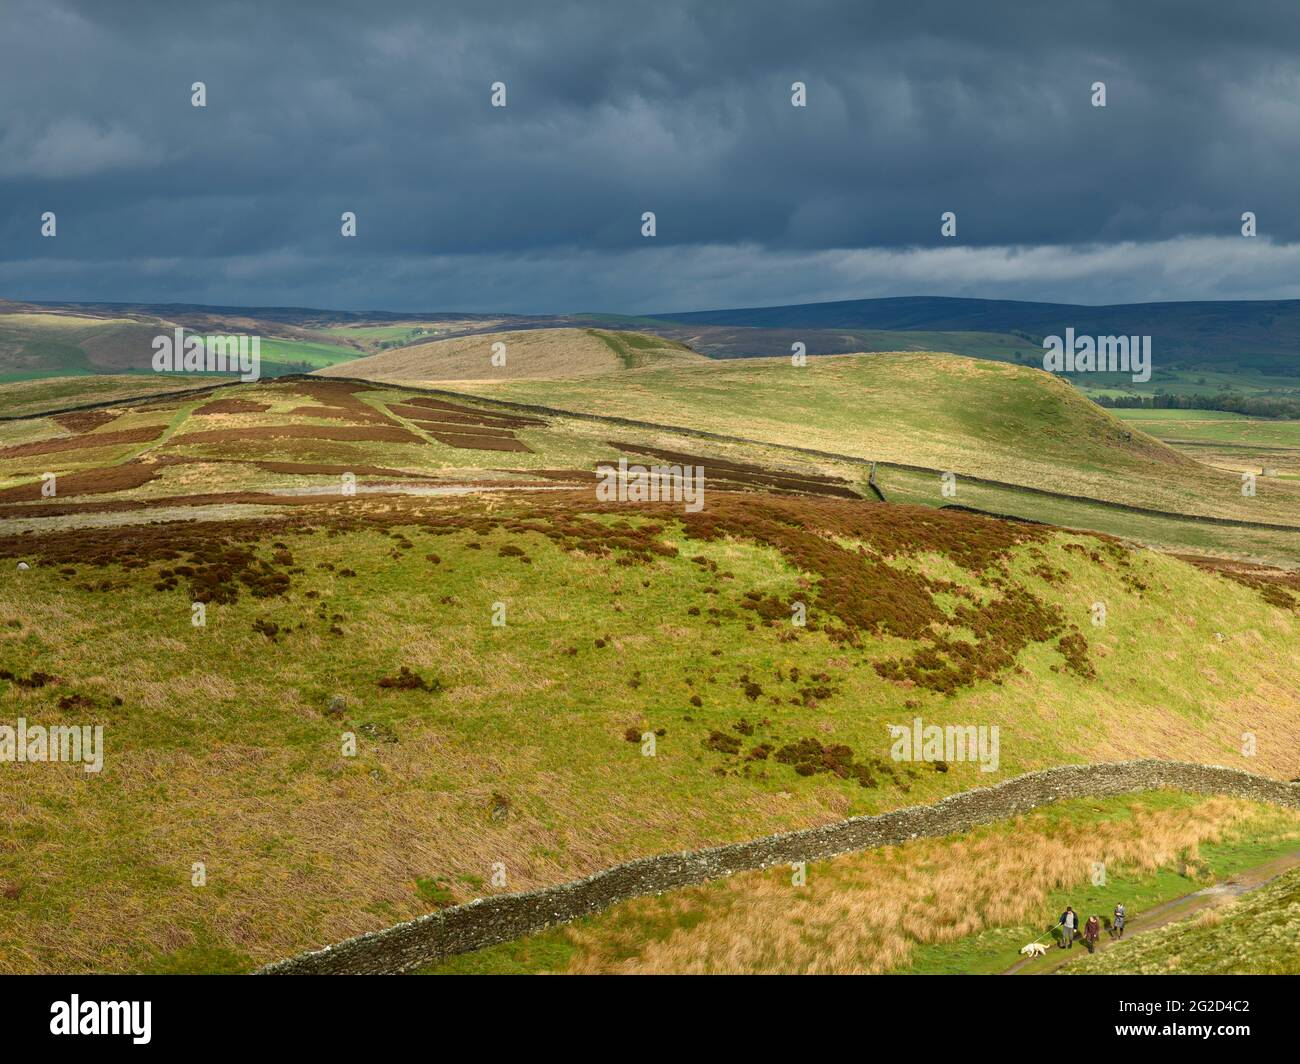 Scenic rural landscape & dark rain clouds (hilly area, rolling sunlit hills, people walking pet dog) - view to Wharfedale, Yorkshire Dales England, UK Stock Photo